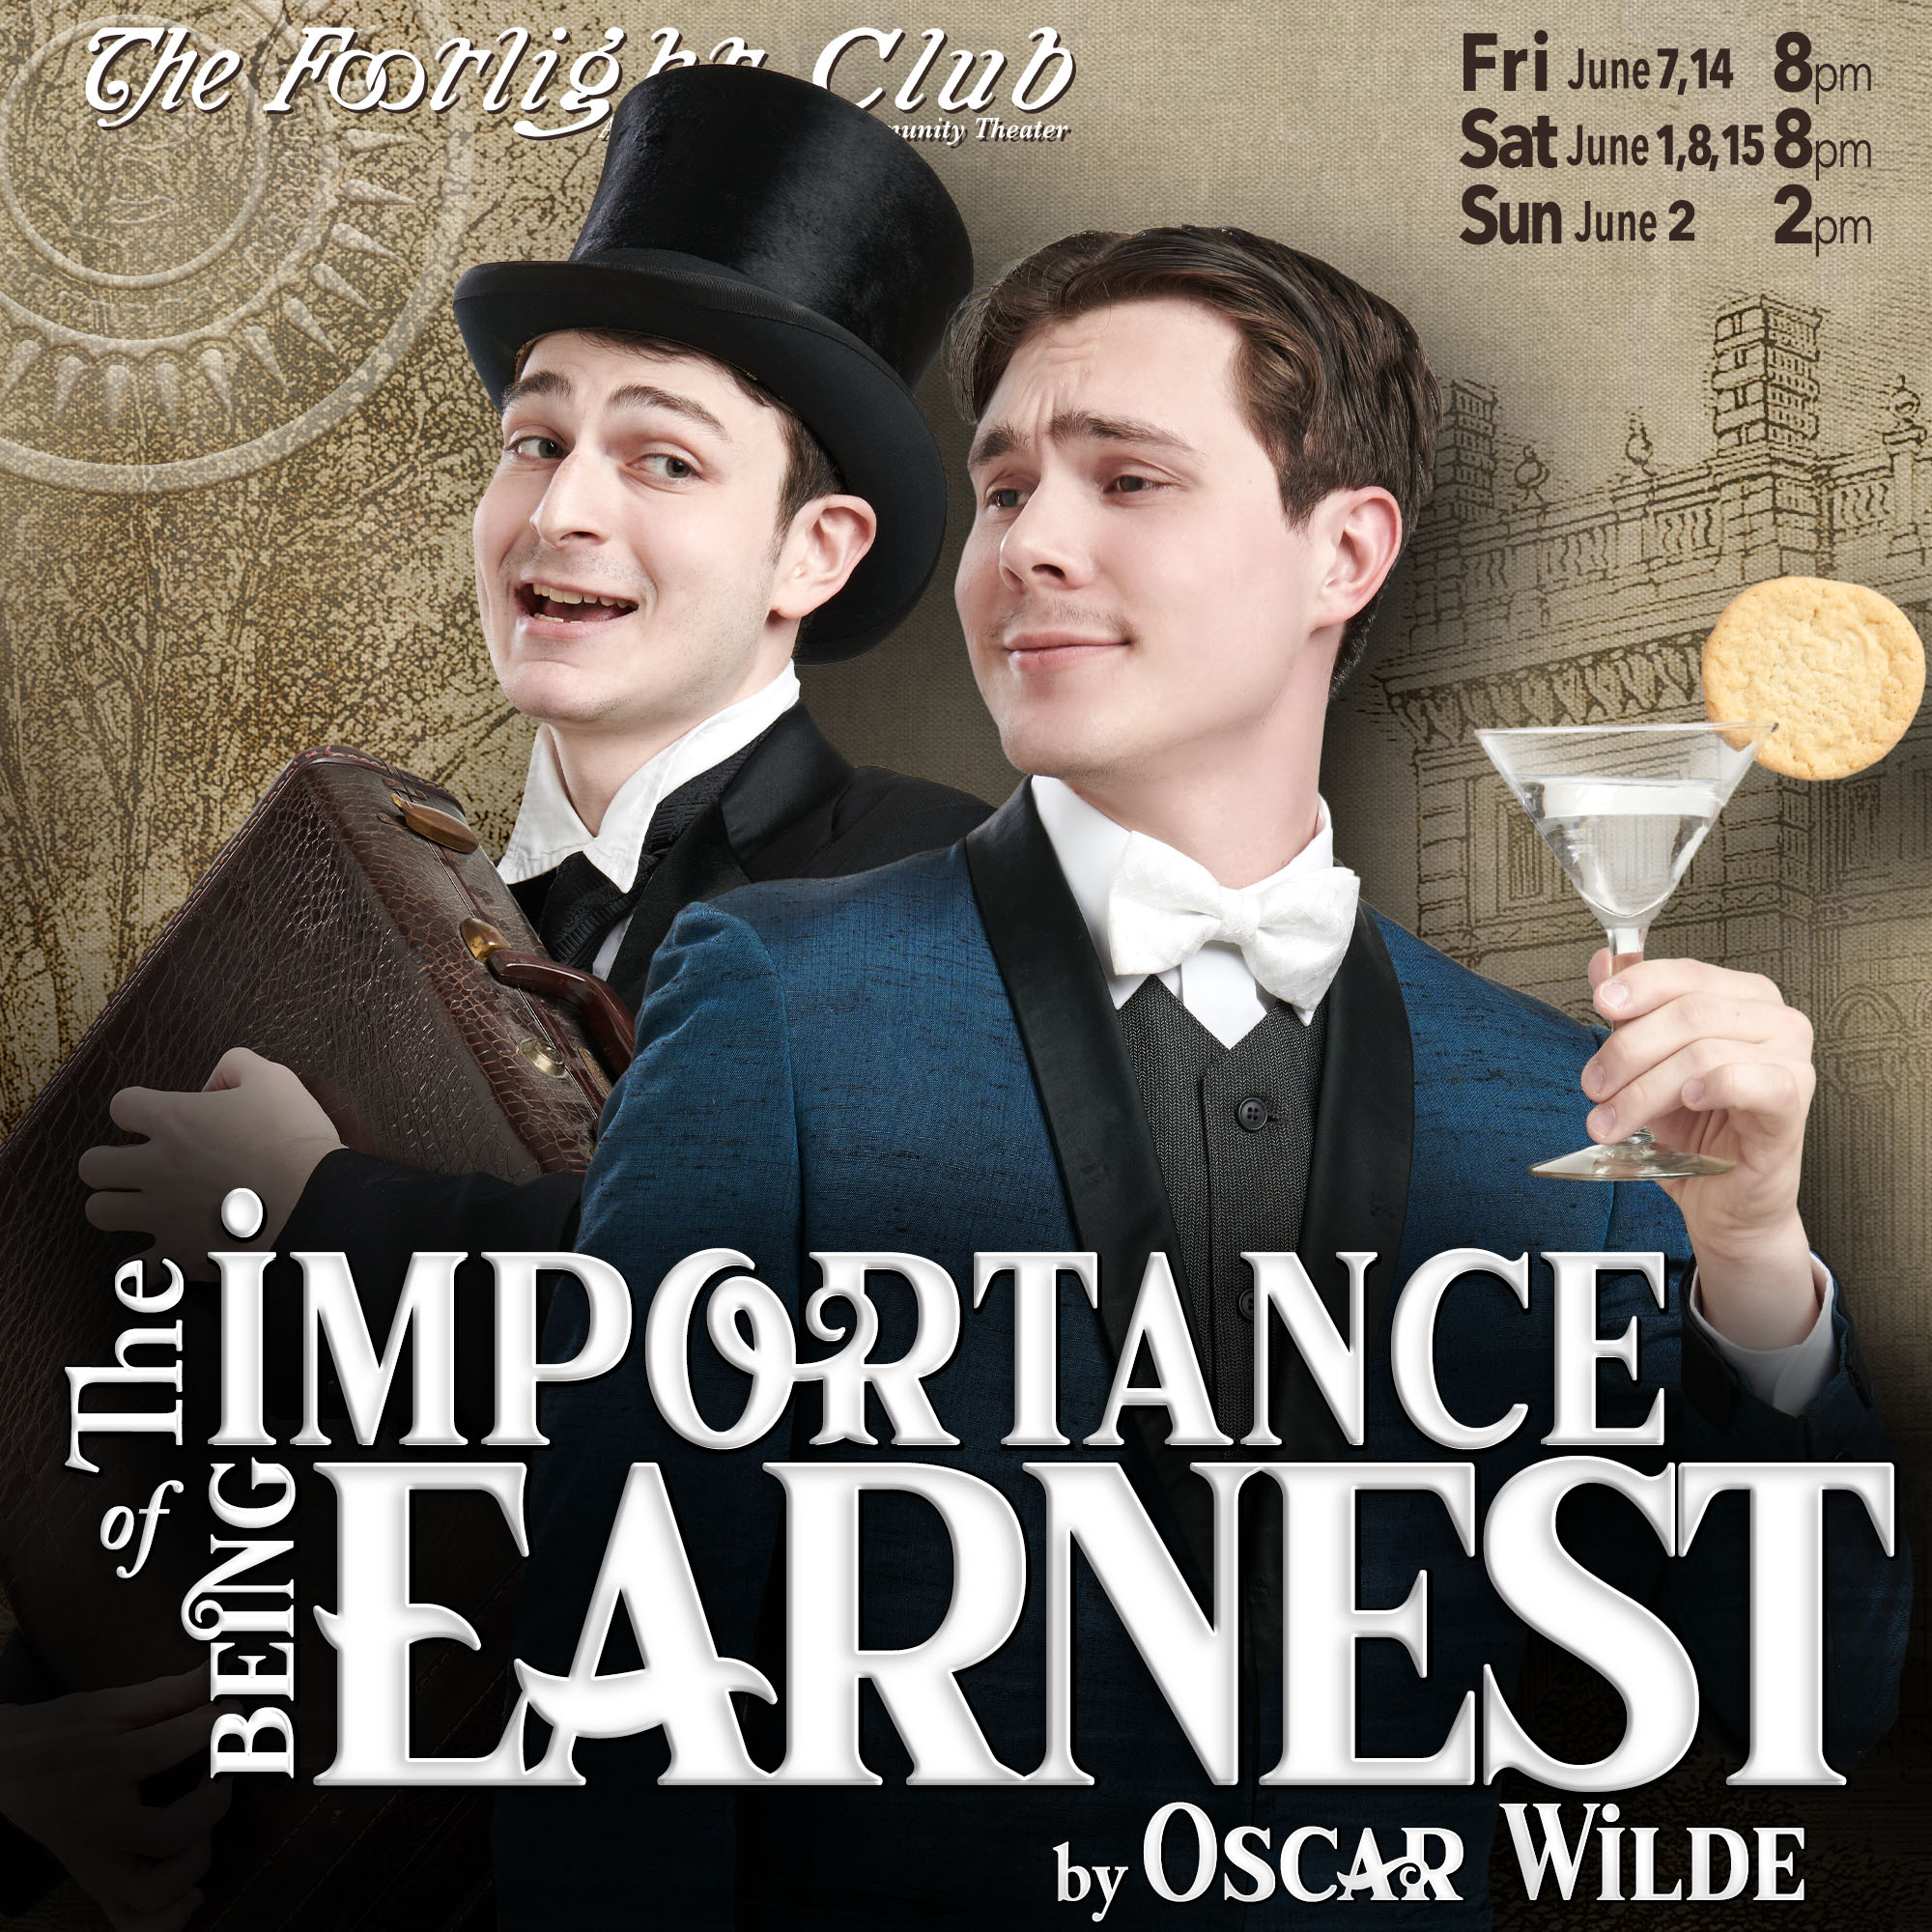 The Importance of Being Earnest play banner